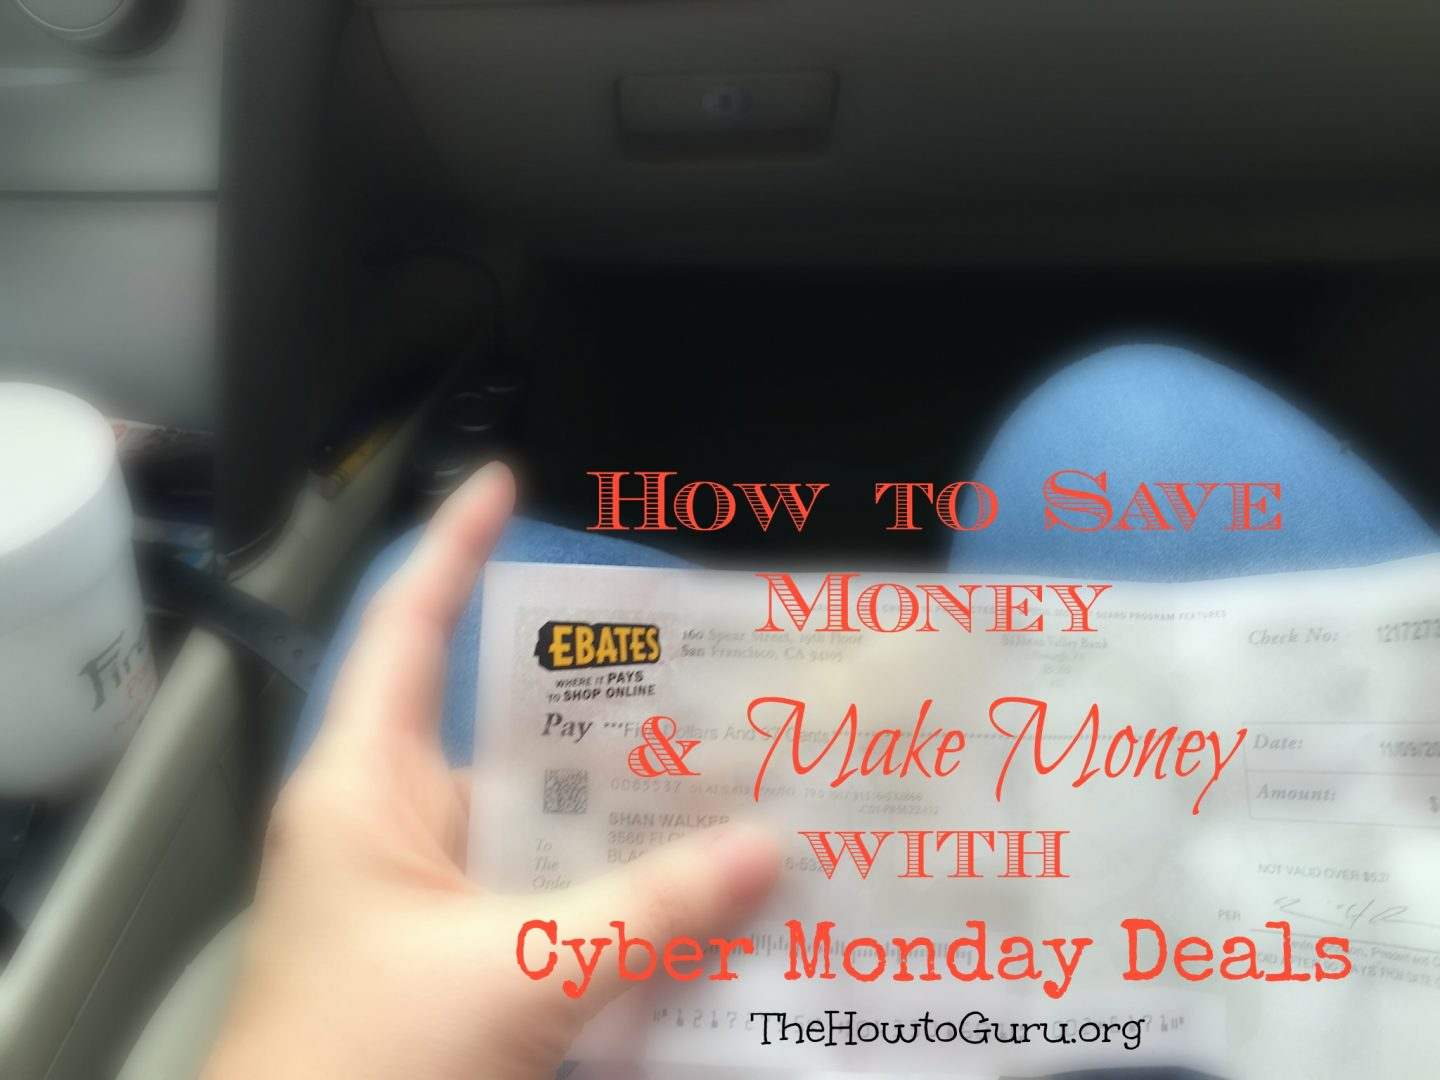 How To Make Money While Saving Money On Cyber Monday Deals + My Faves